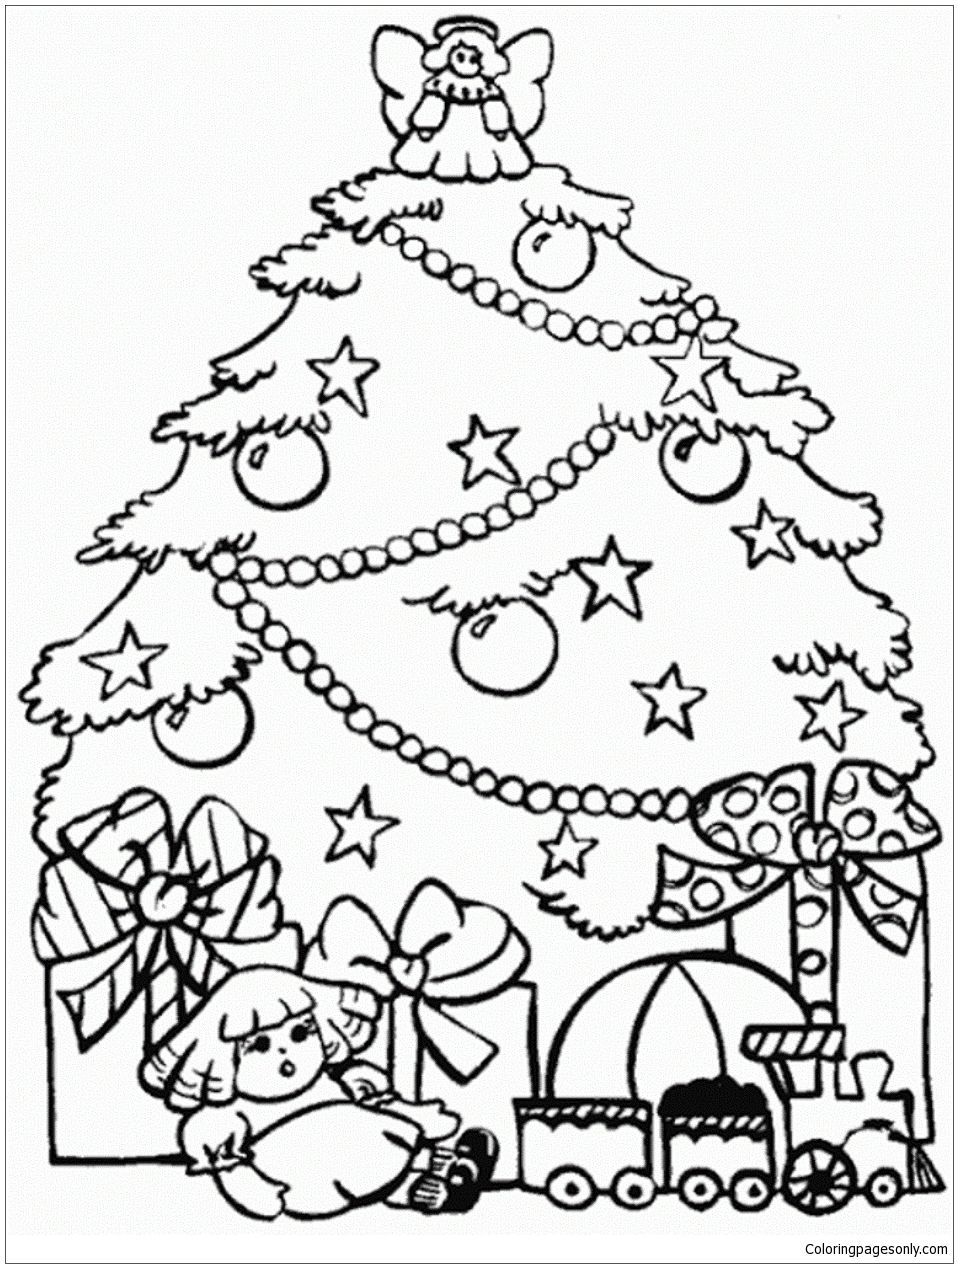 Christmas Coloring Pages Of Trees With Presents And Tree Page